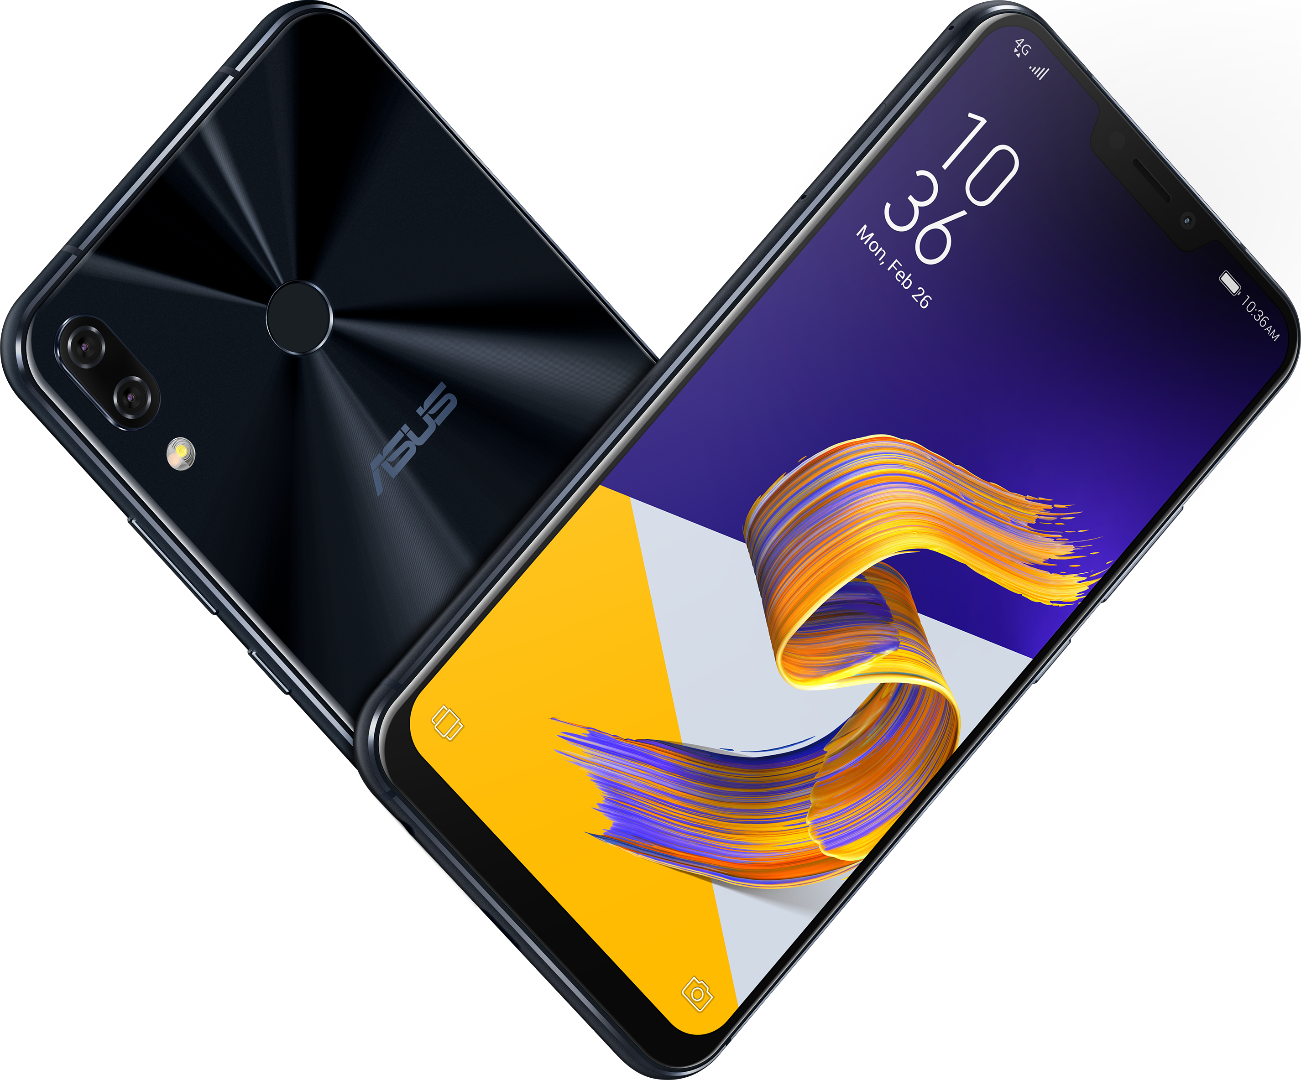 ZenFone 5 update and other news: New OTA rolling out with